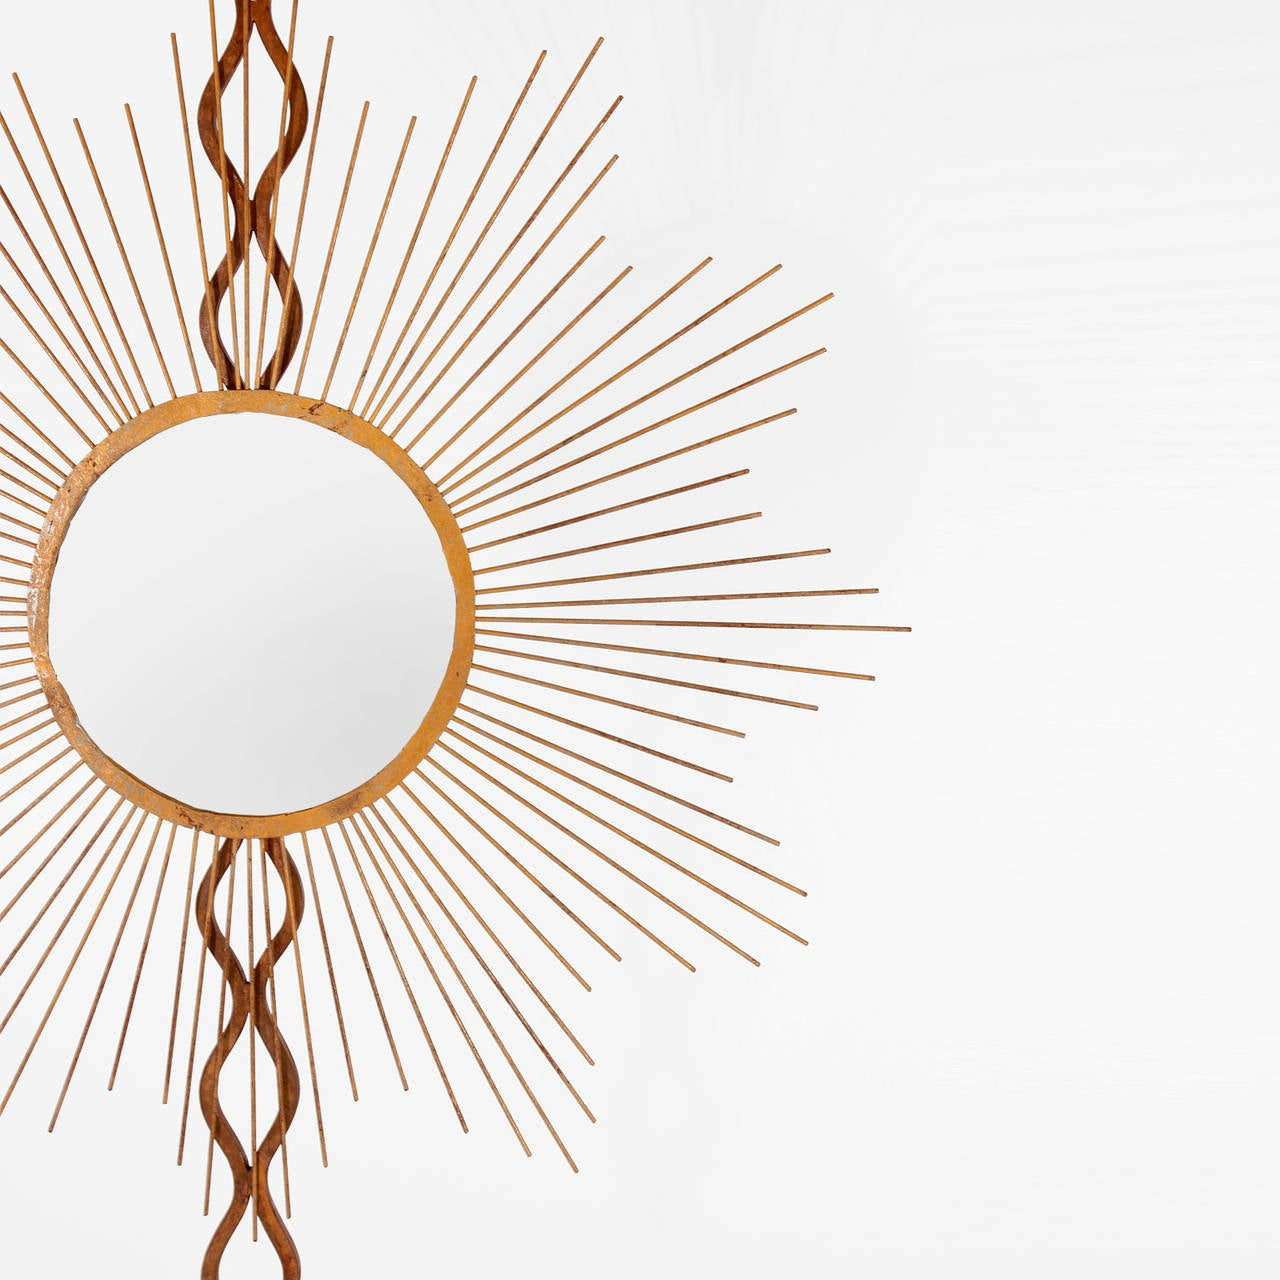 Pair of mirrors on sun shape, made in metal with golden patina with three-legged pedestal.